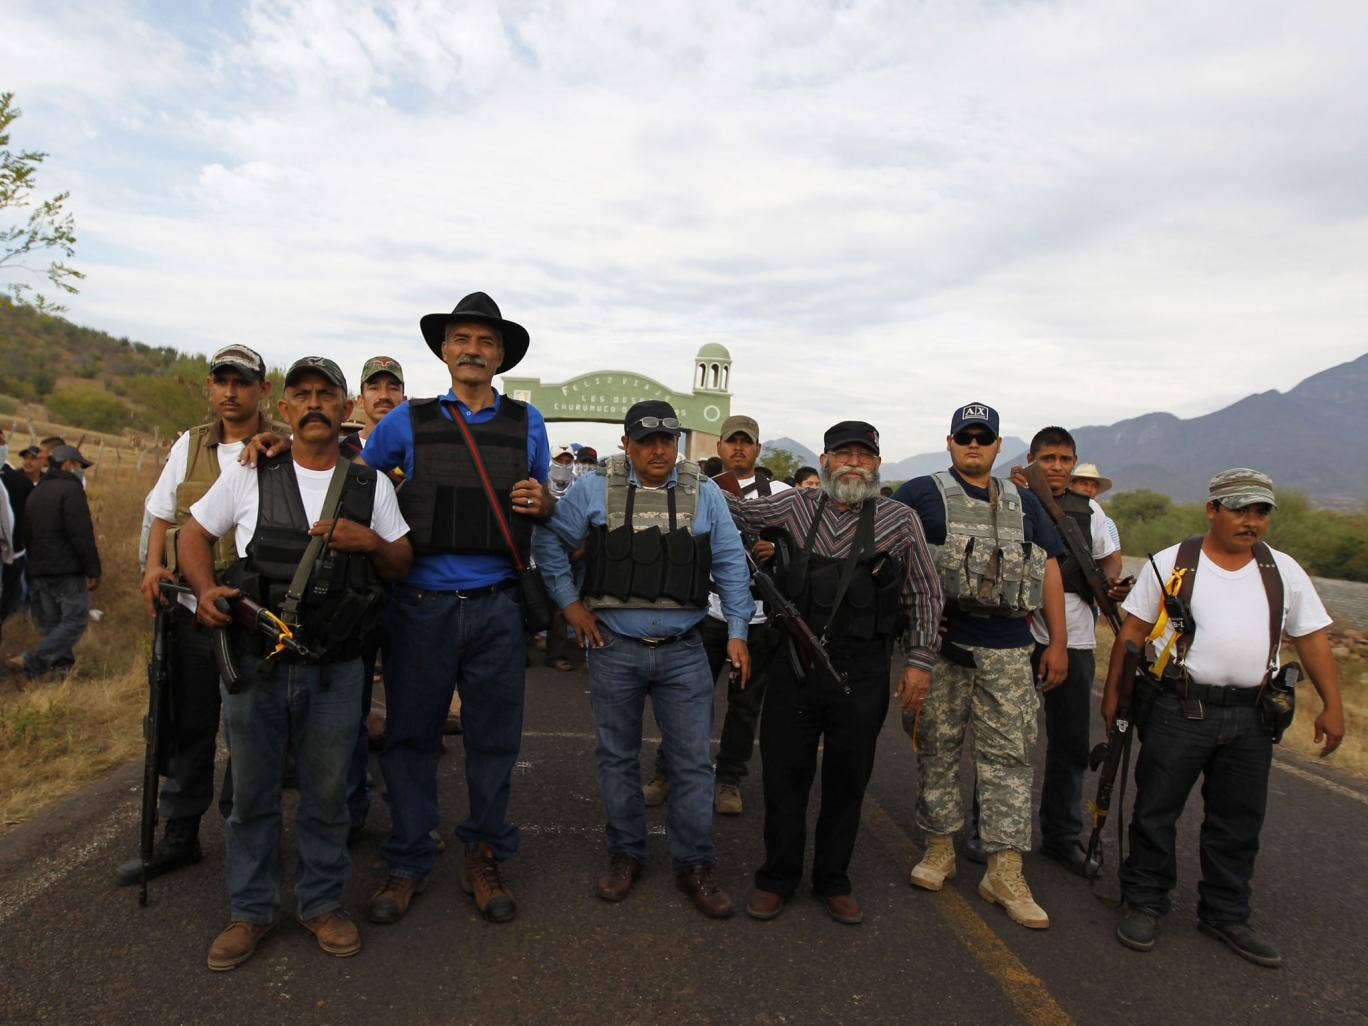 Dr Jose Manuel Mireles (third left), one of the leaders of the Michoacan vigilante group pictured with him. He has since been injured in an aircrash that could have been an attempt on his life